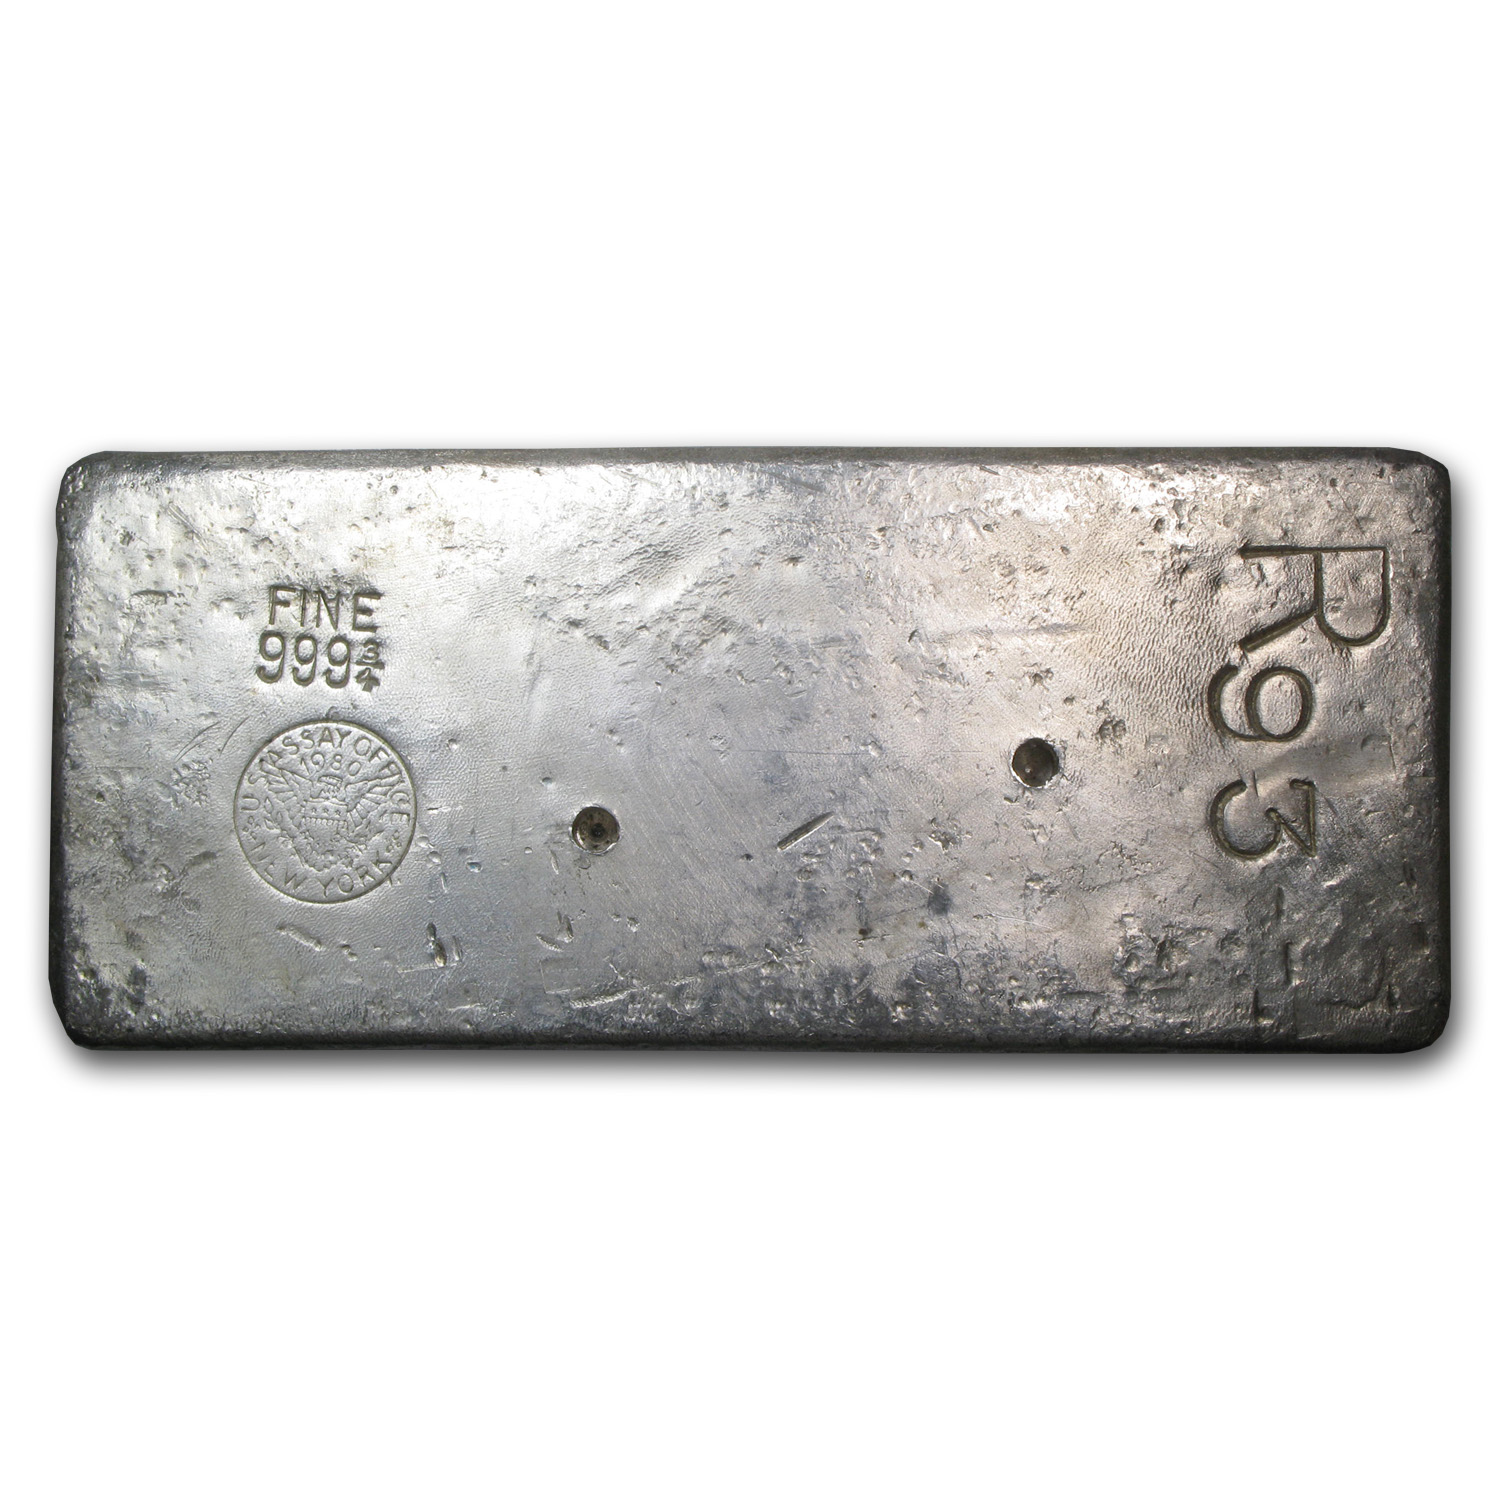 91.30 oz Silver Bar - New York Assay Office (1980)